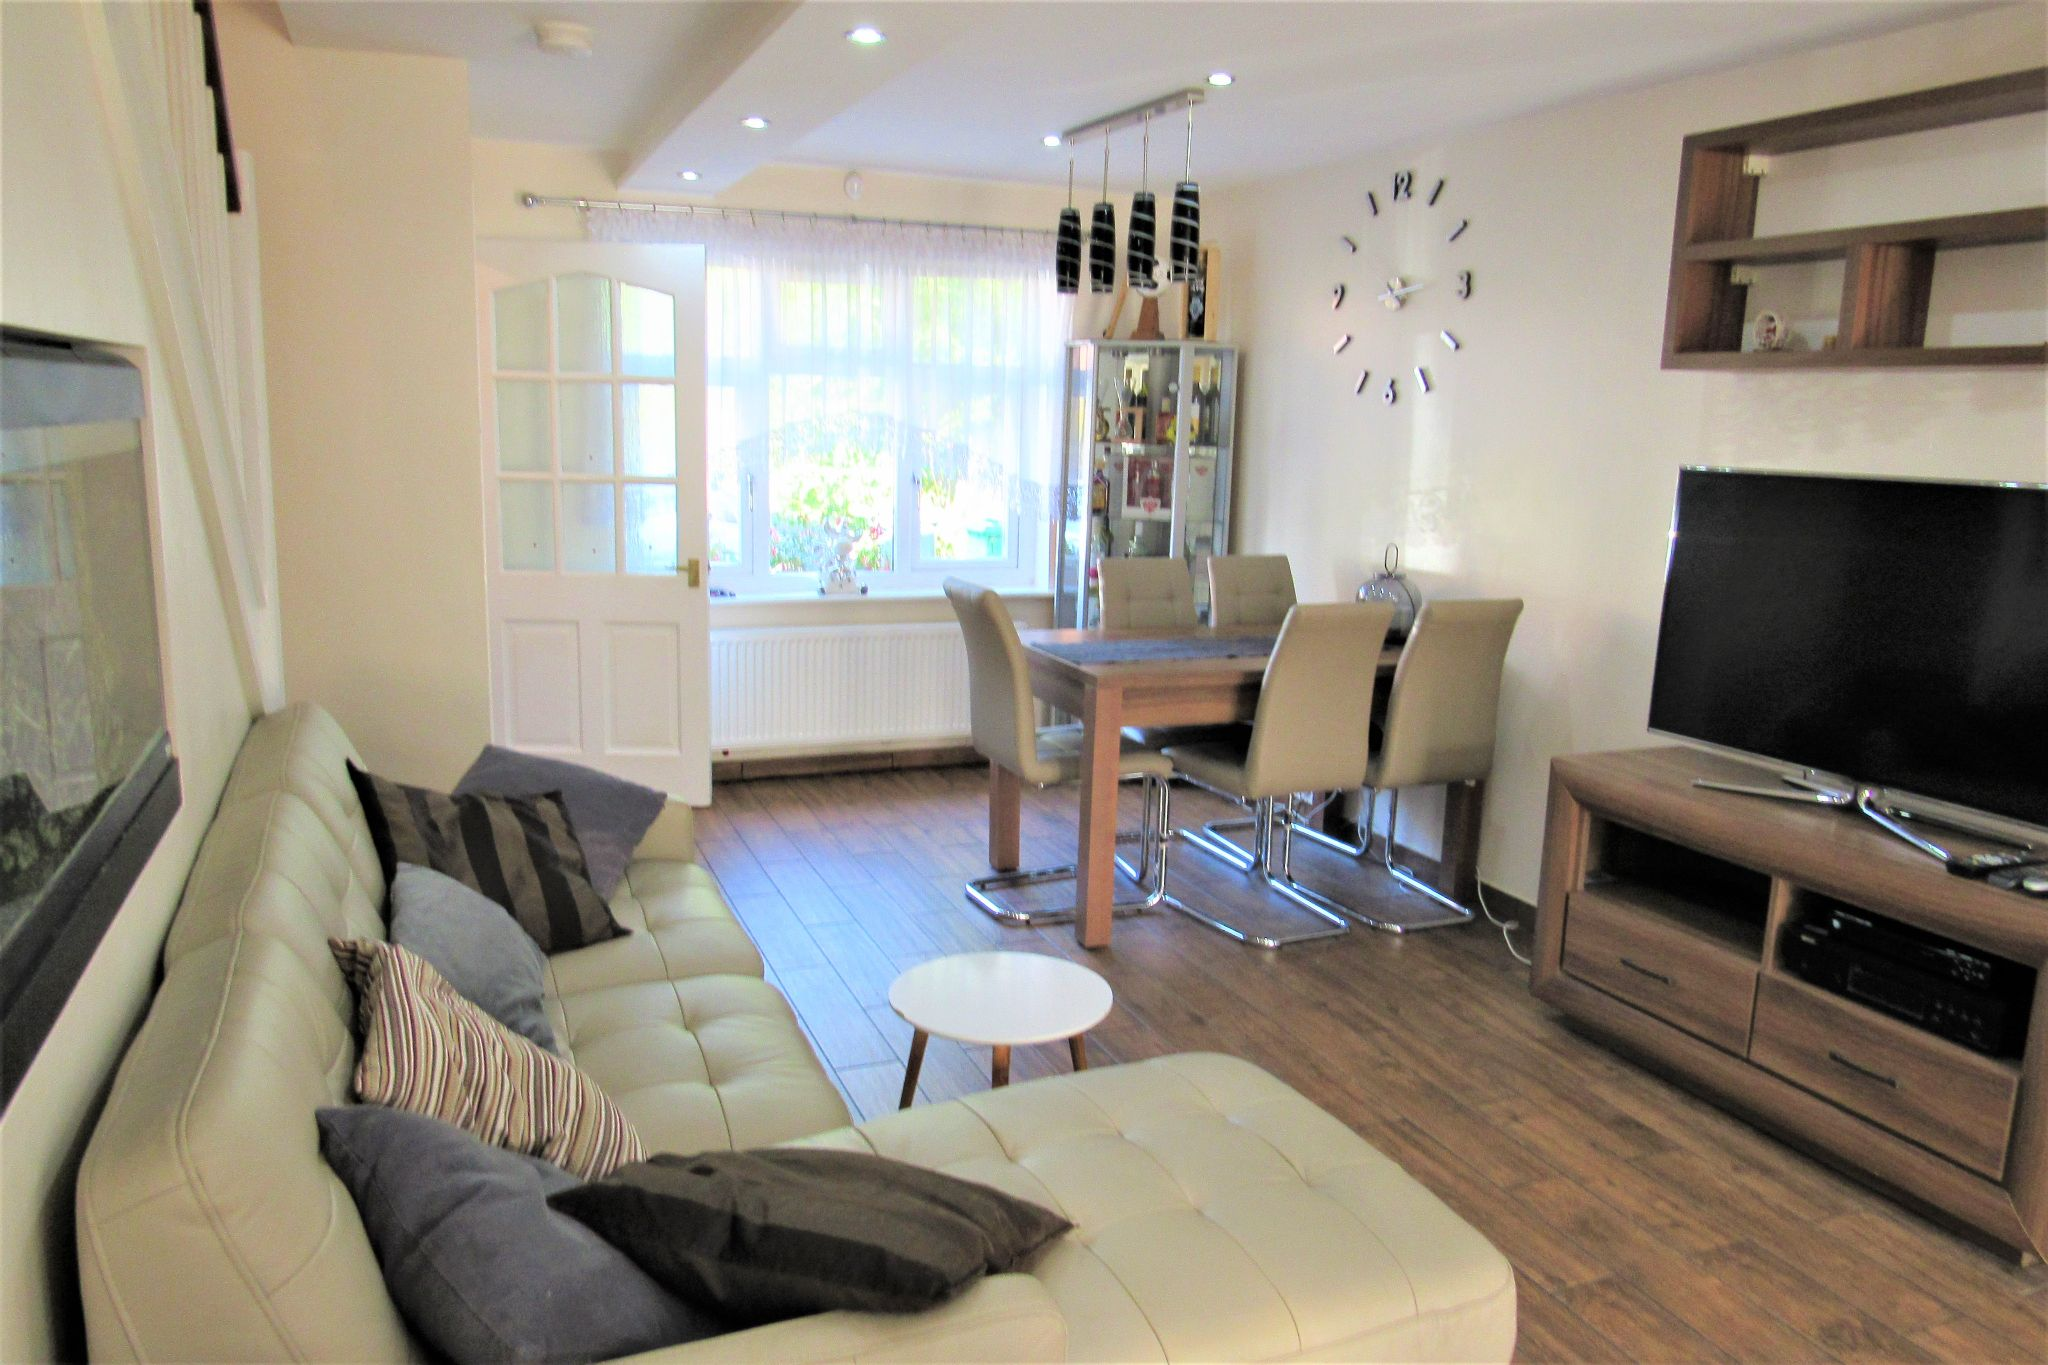 2 bedroom end terraced house Under Offer in Manchester - Photograph 5.